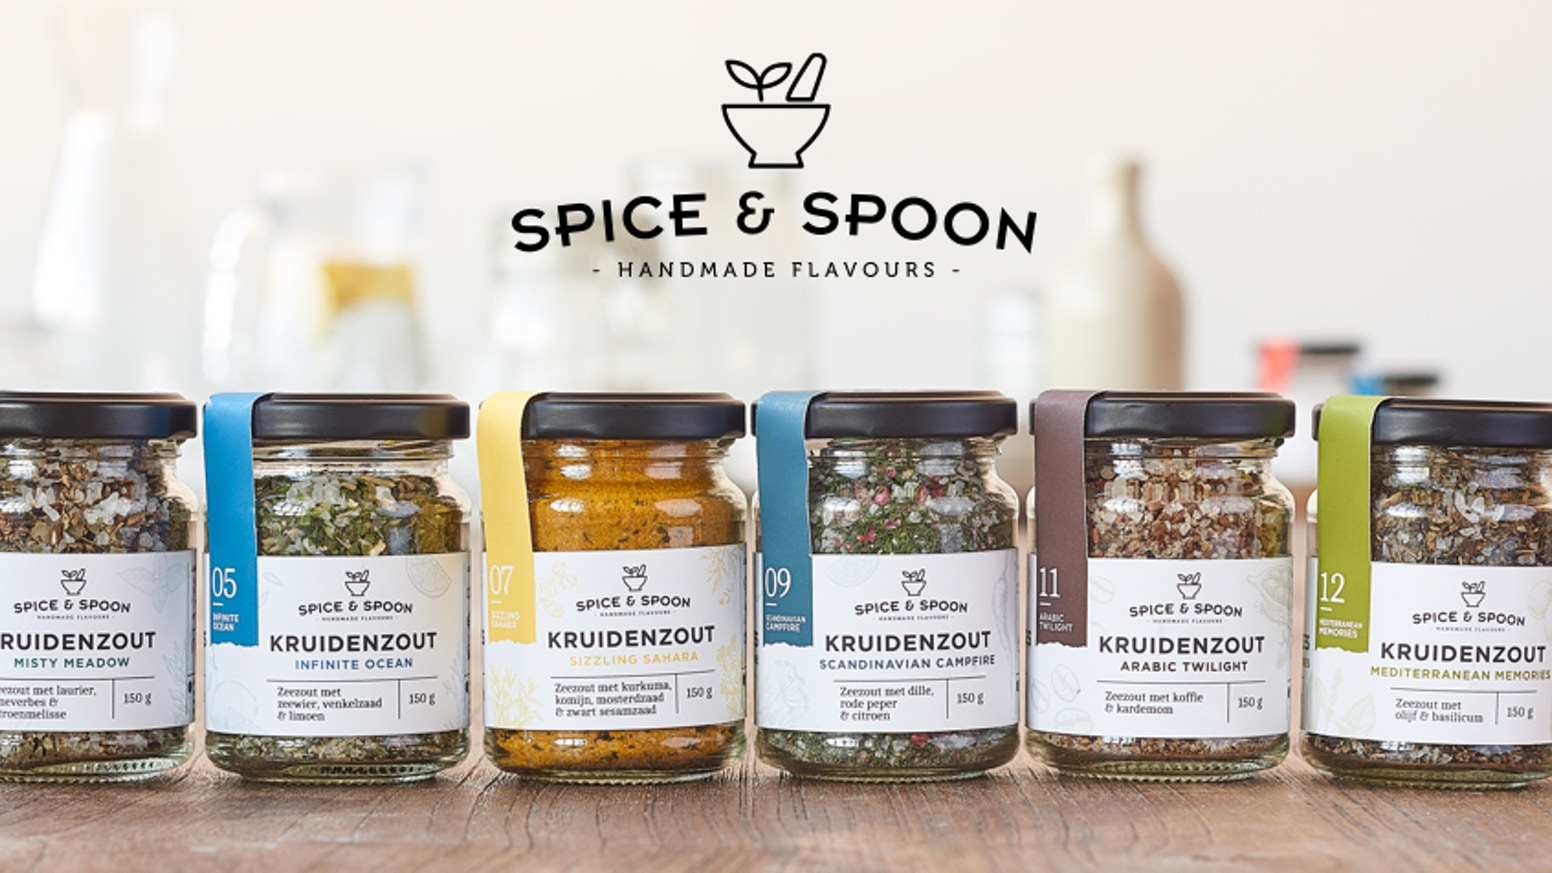 Enjoy your favourite everyday dishes, brightened up with the unique flavoured salts and sugars from Spice & Spoon!